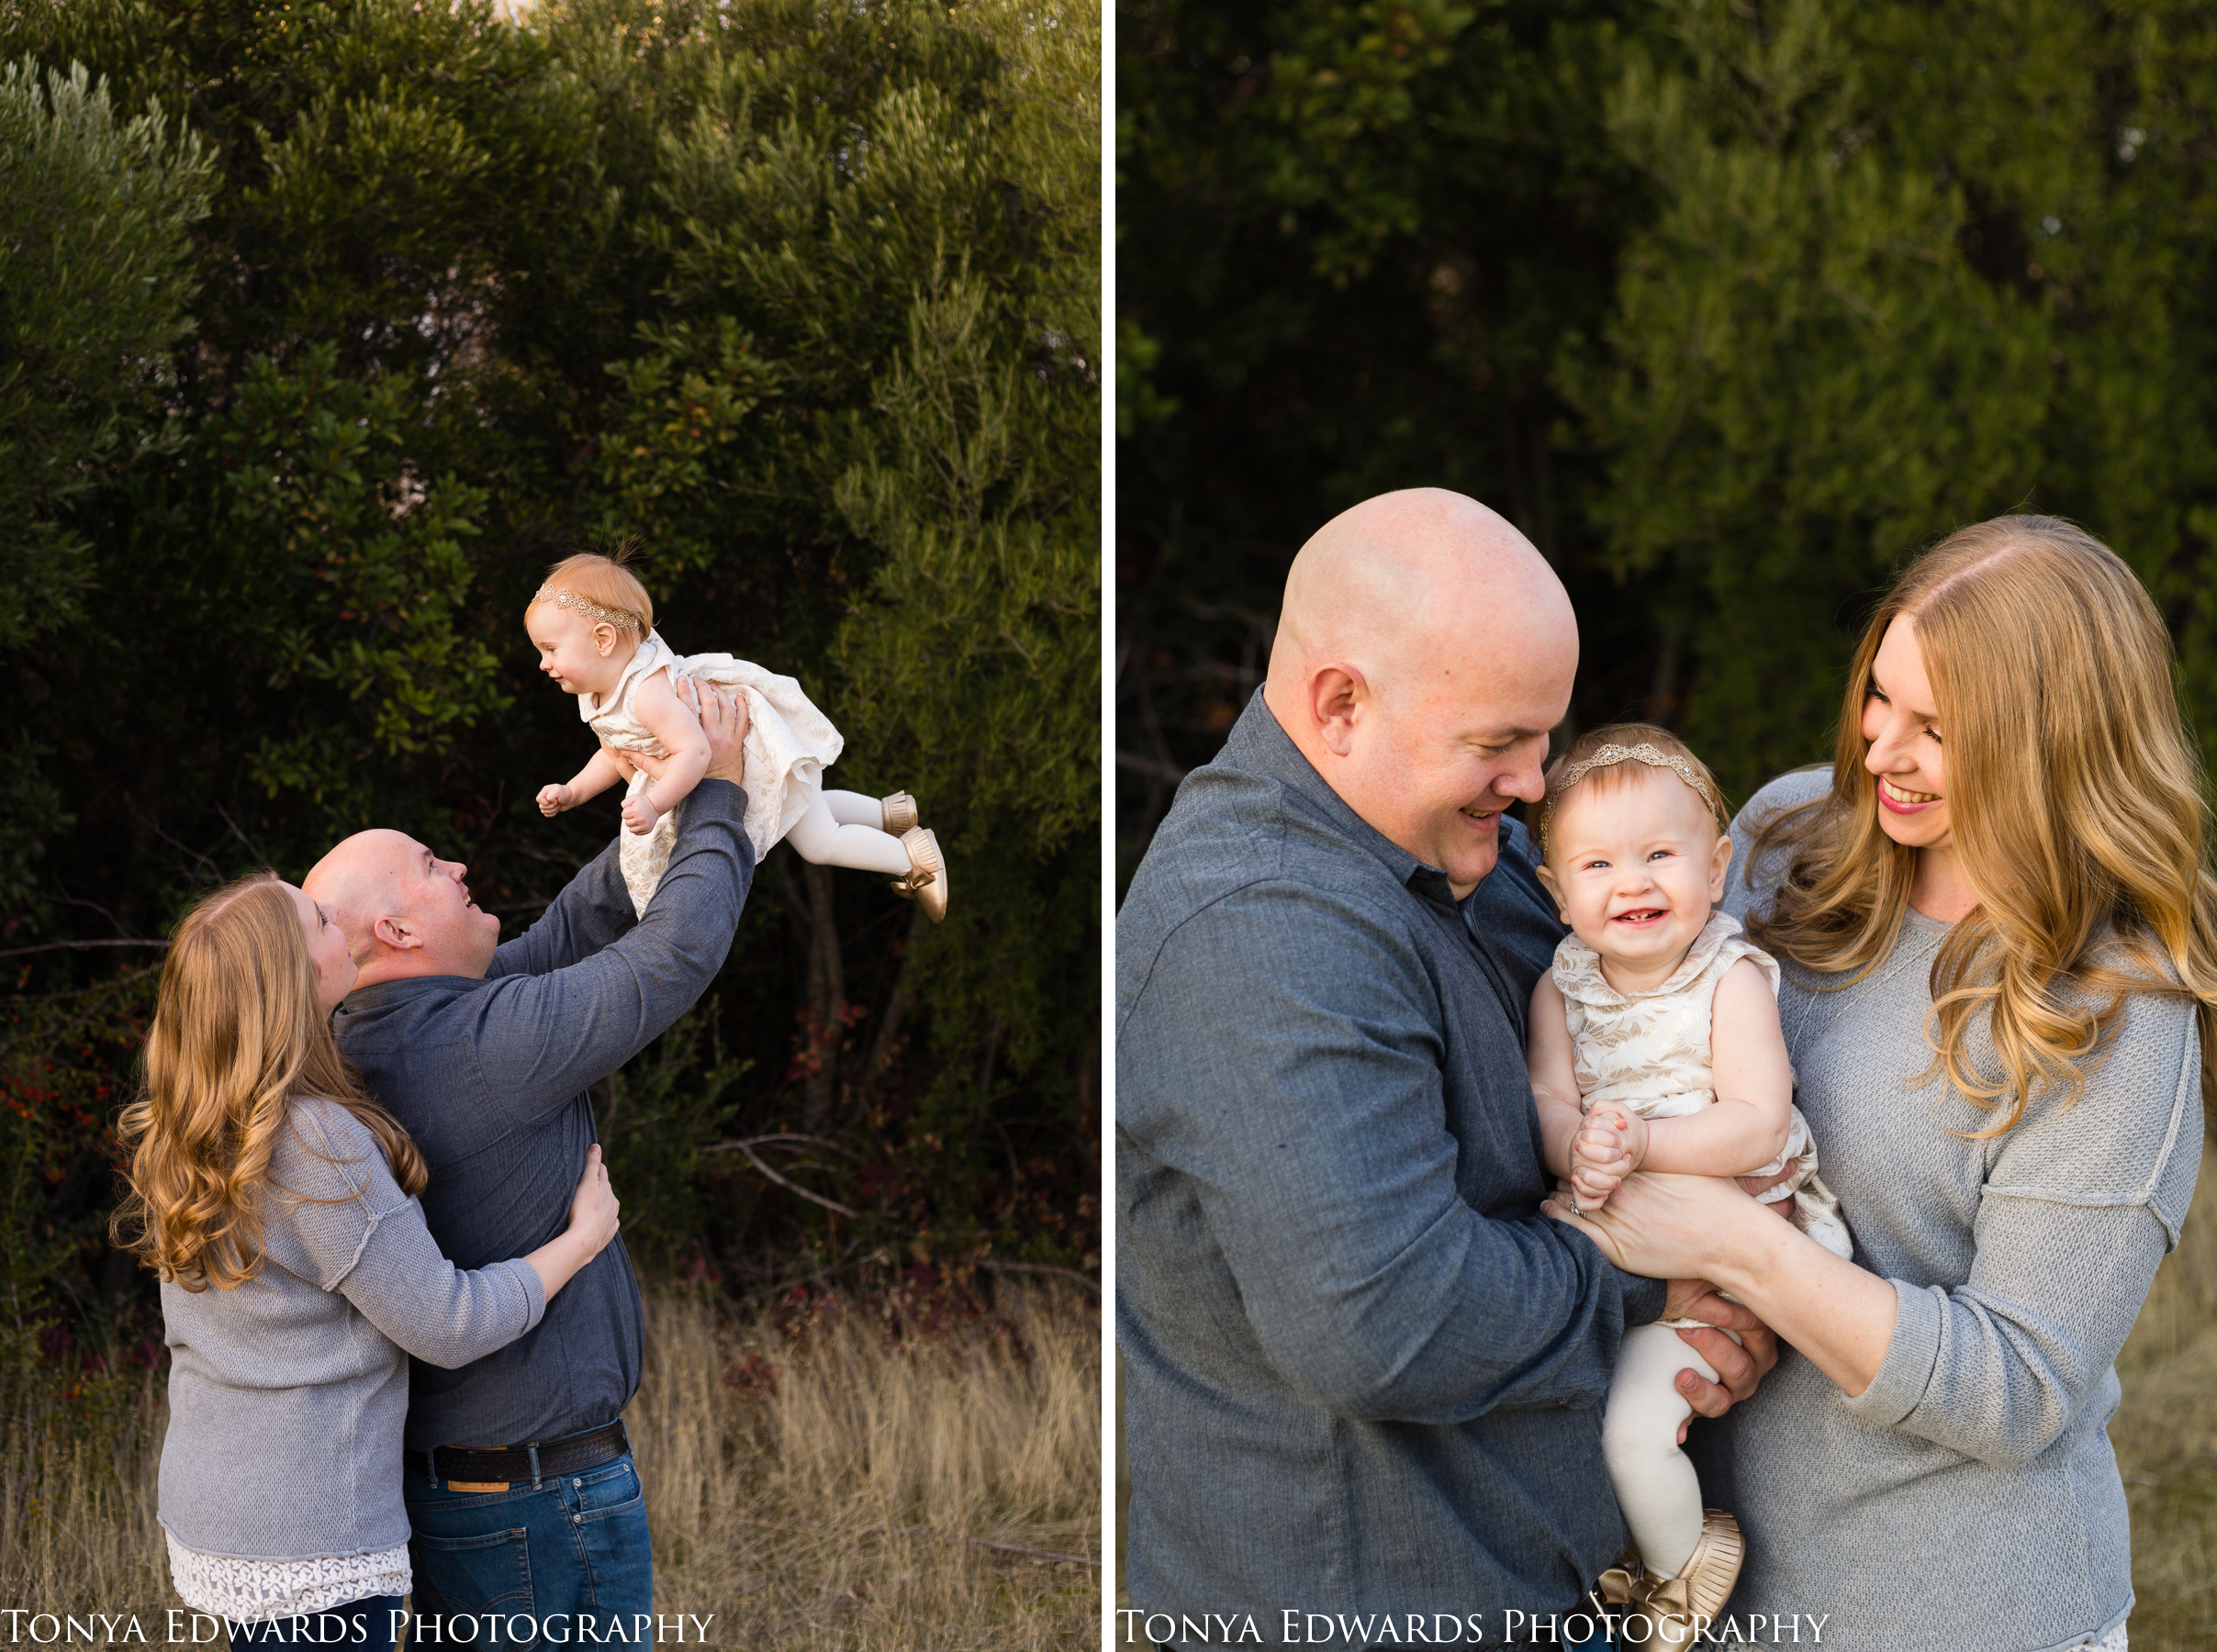 Tonya Edwards Photography | Oroville Photographer | lifestyle photo session mother father with baby daughter in the winter